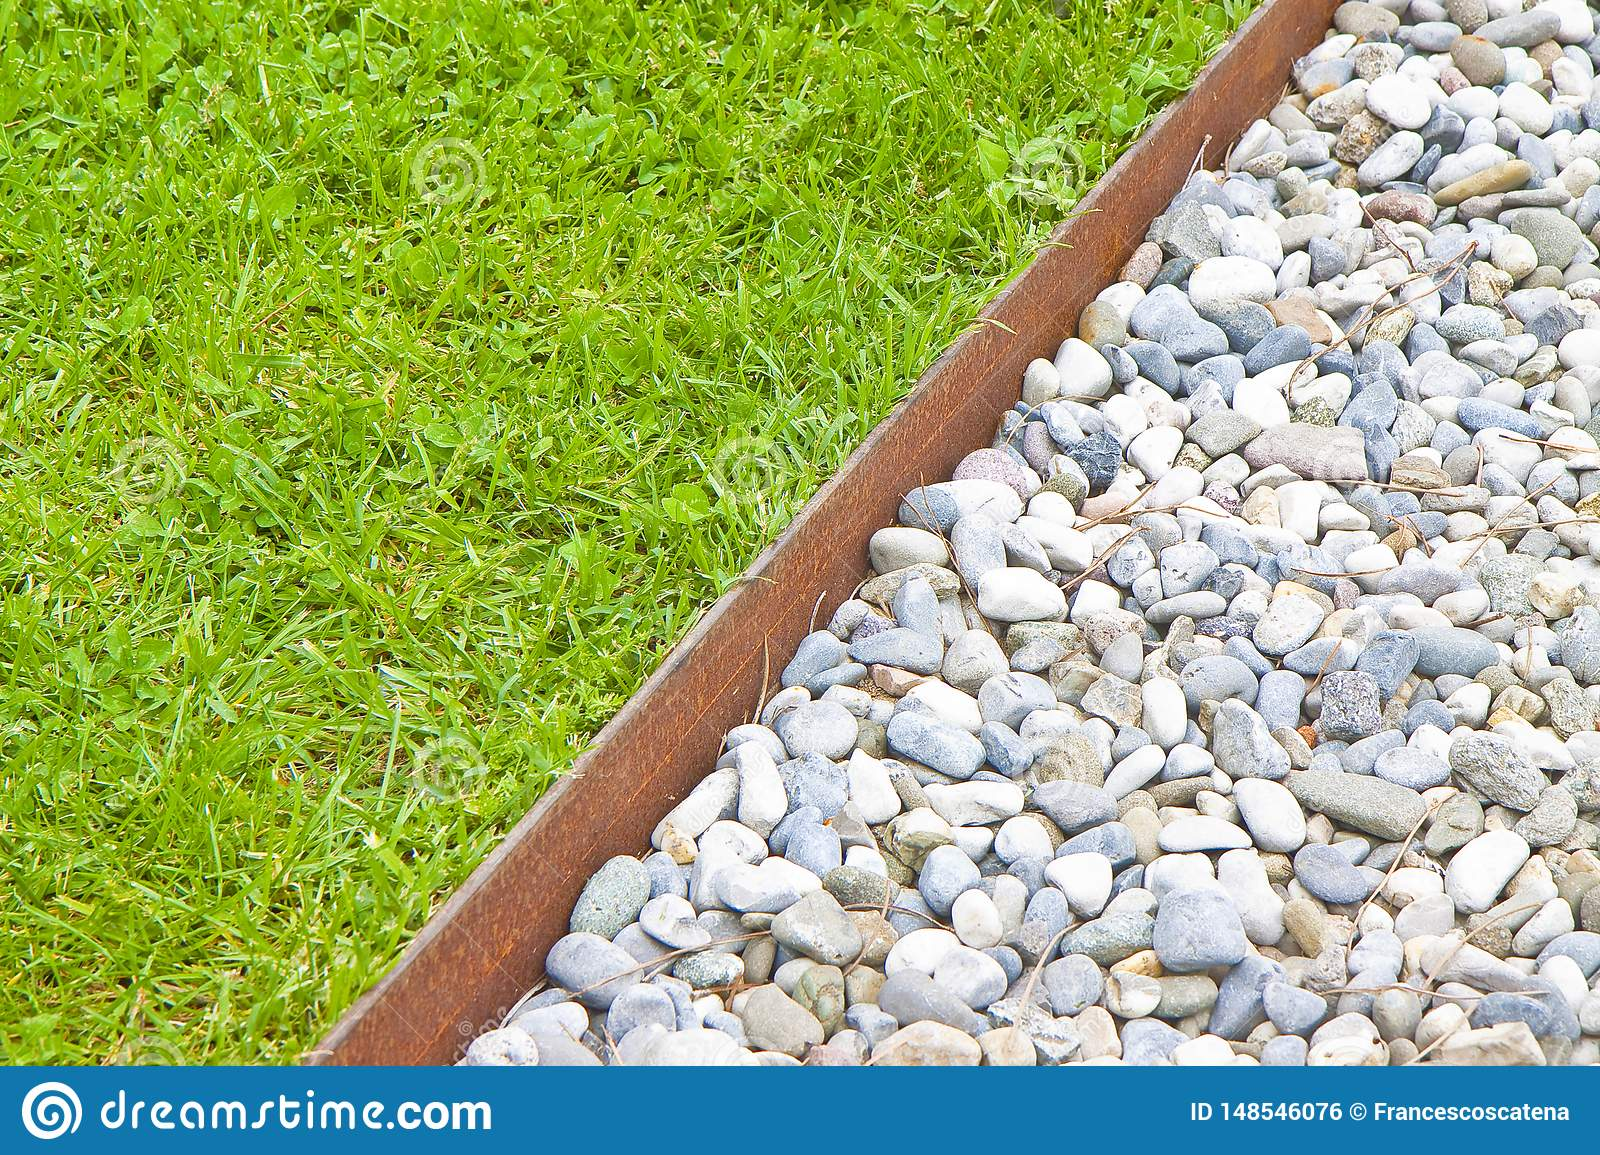 White gravel floor and fresh green lawn with clovers and rusty metal containment profiles